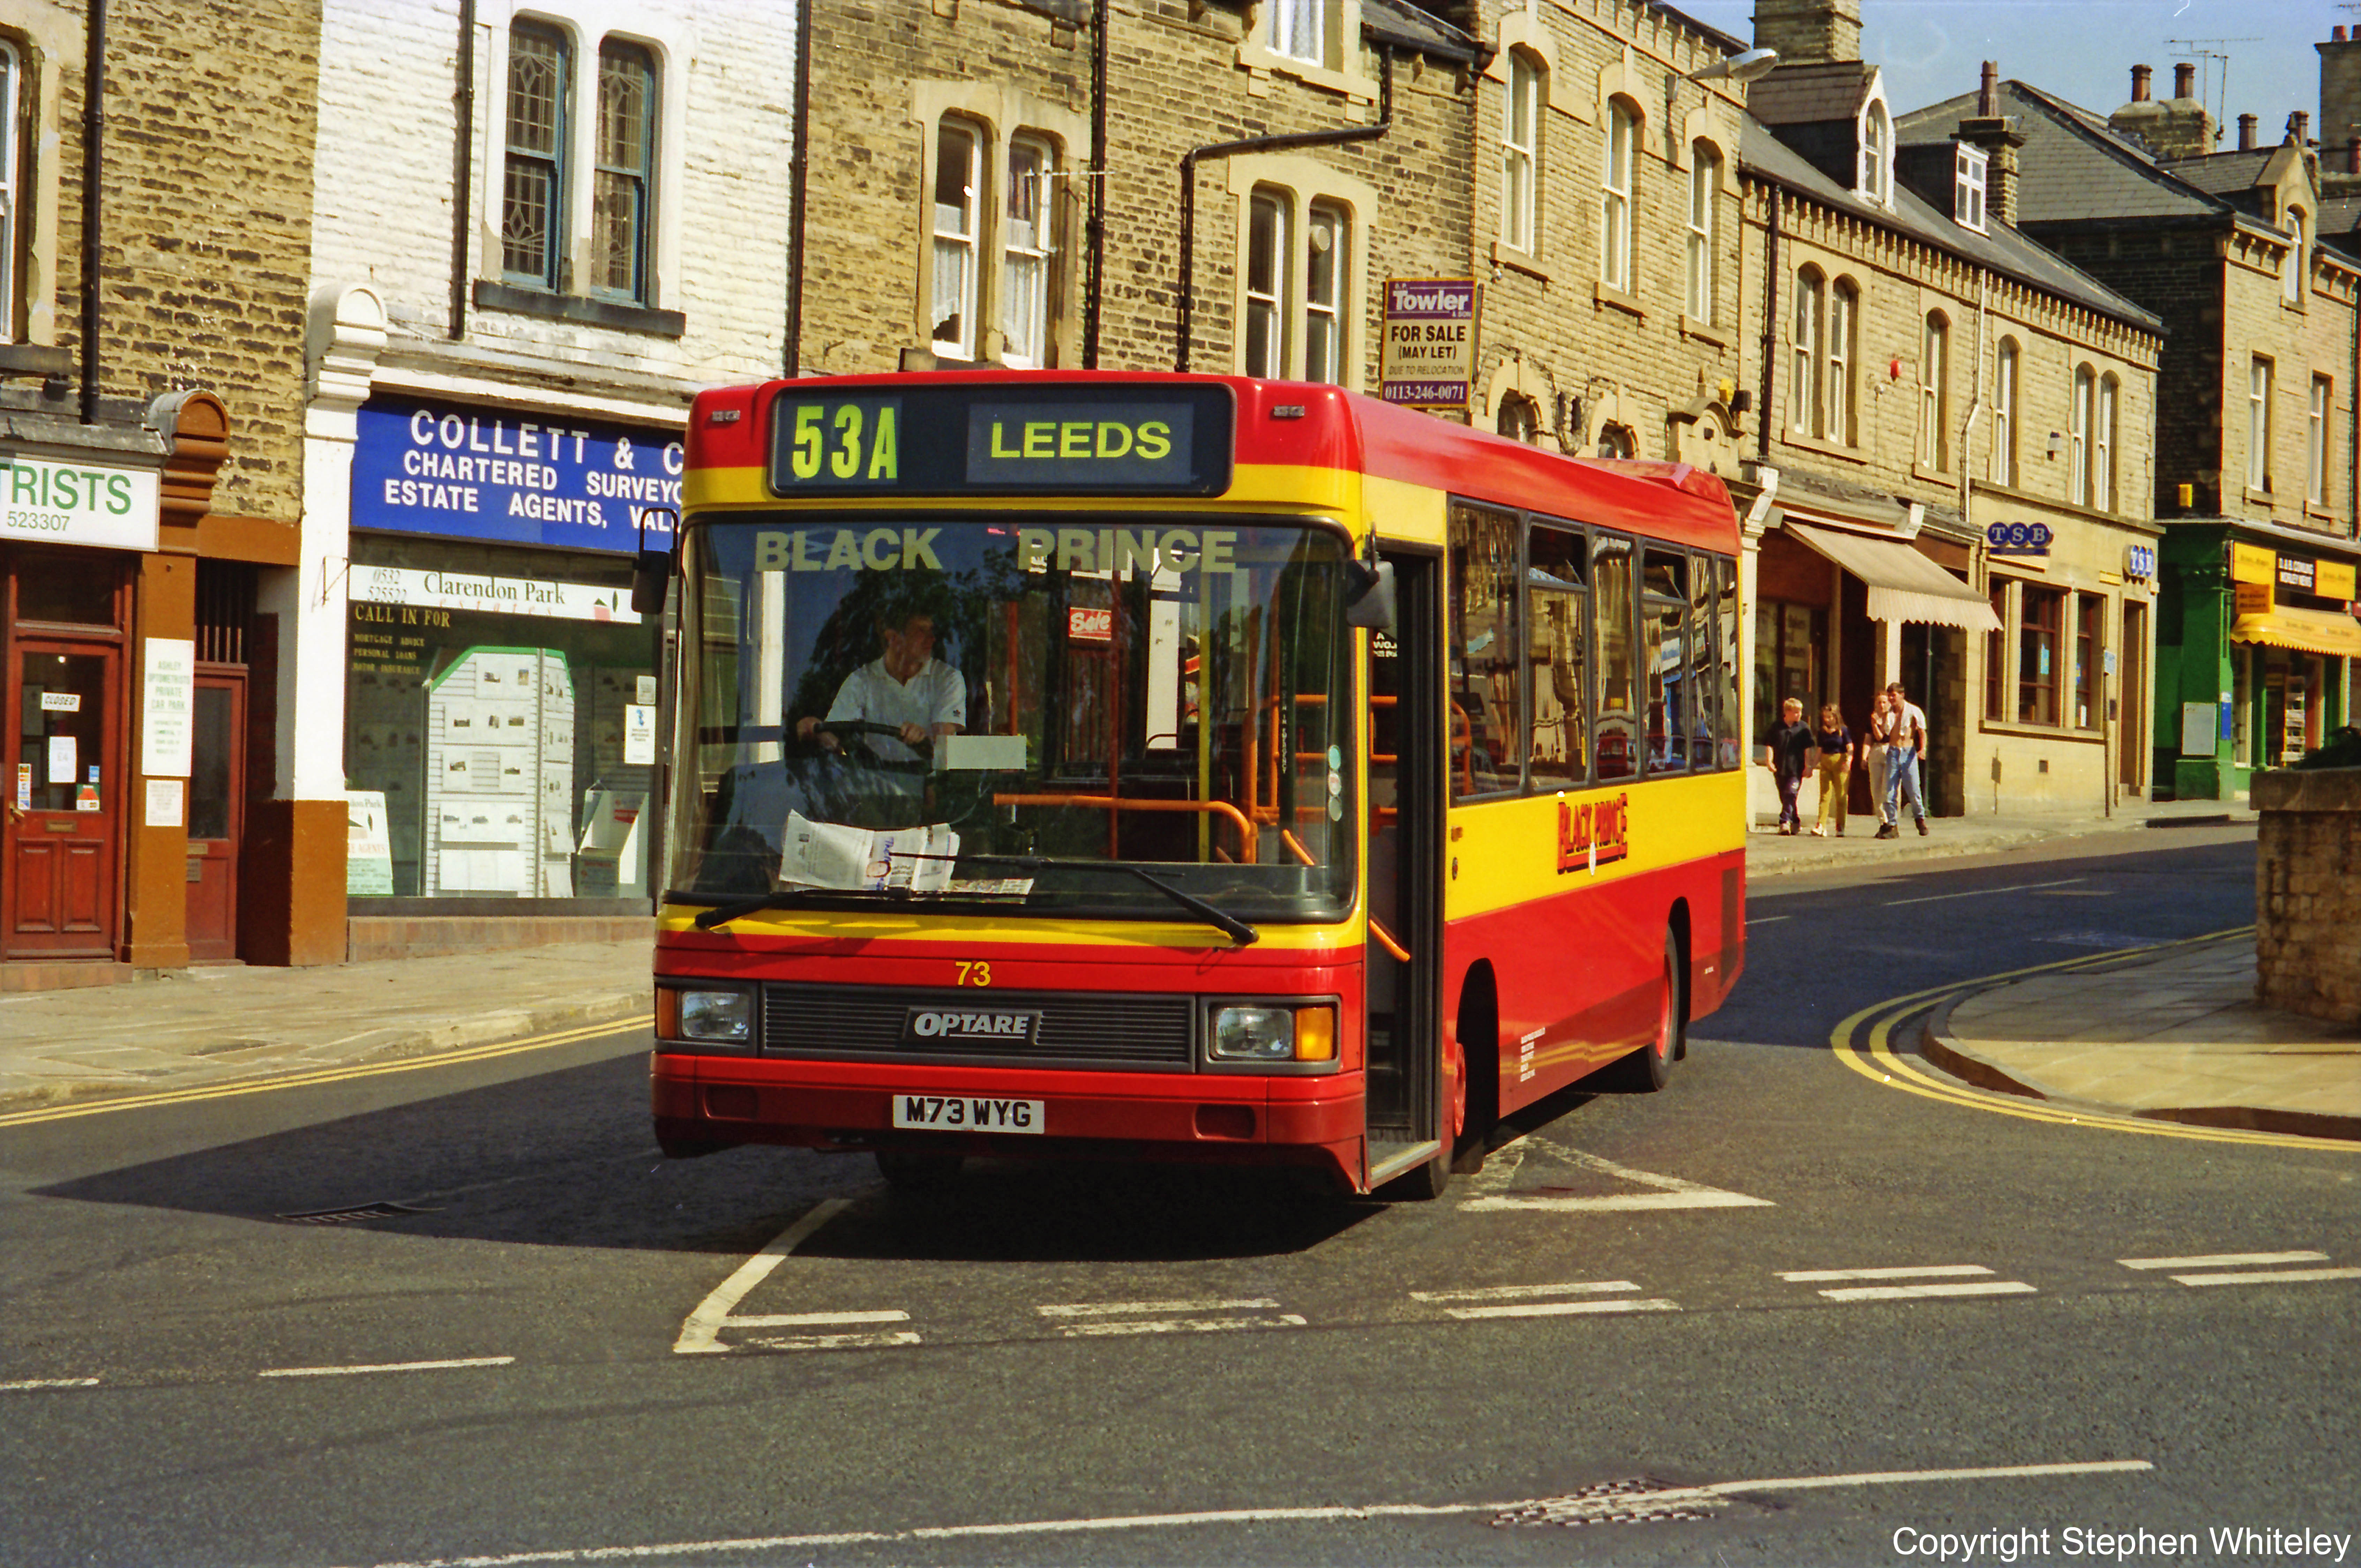 A brand new 73 departs Morley 7/95